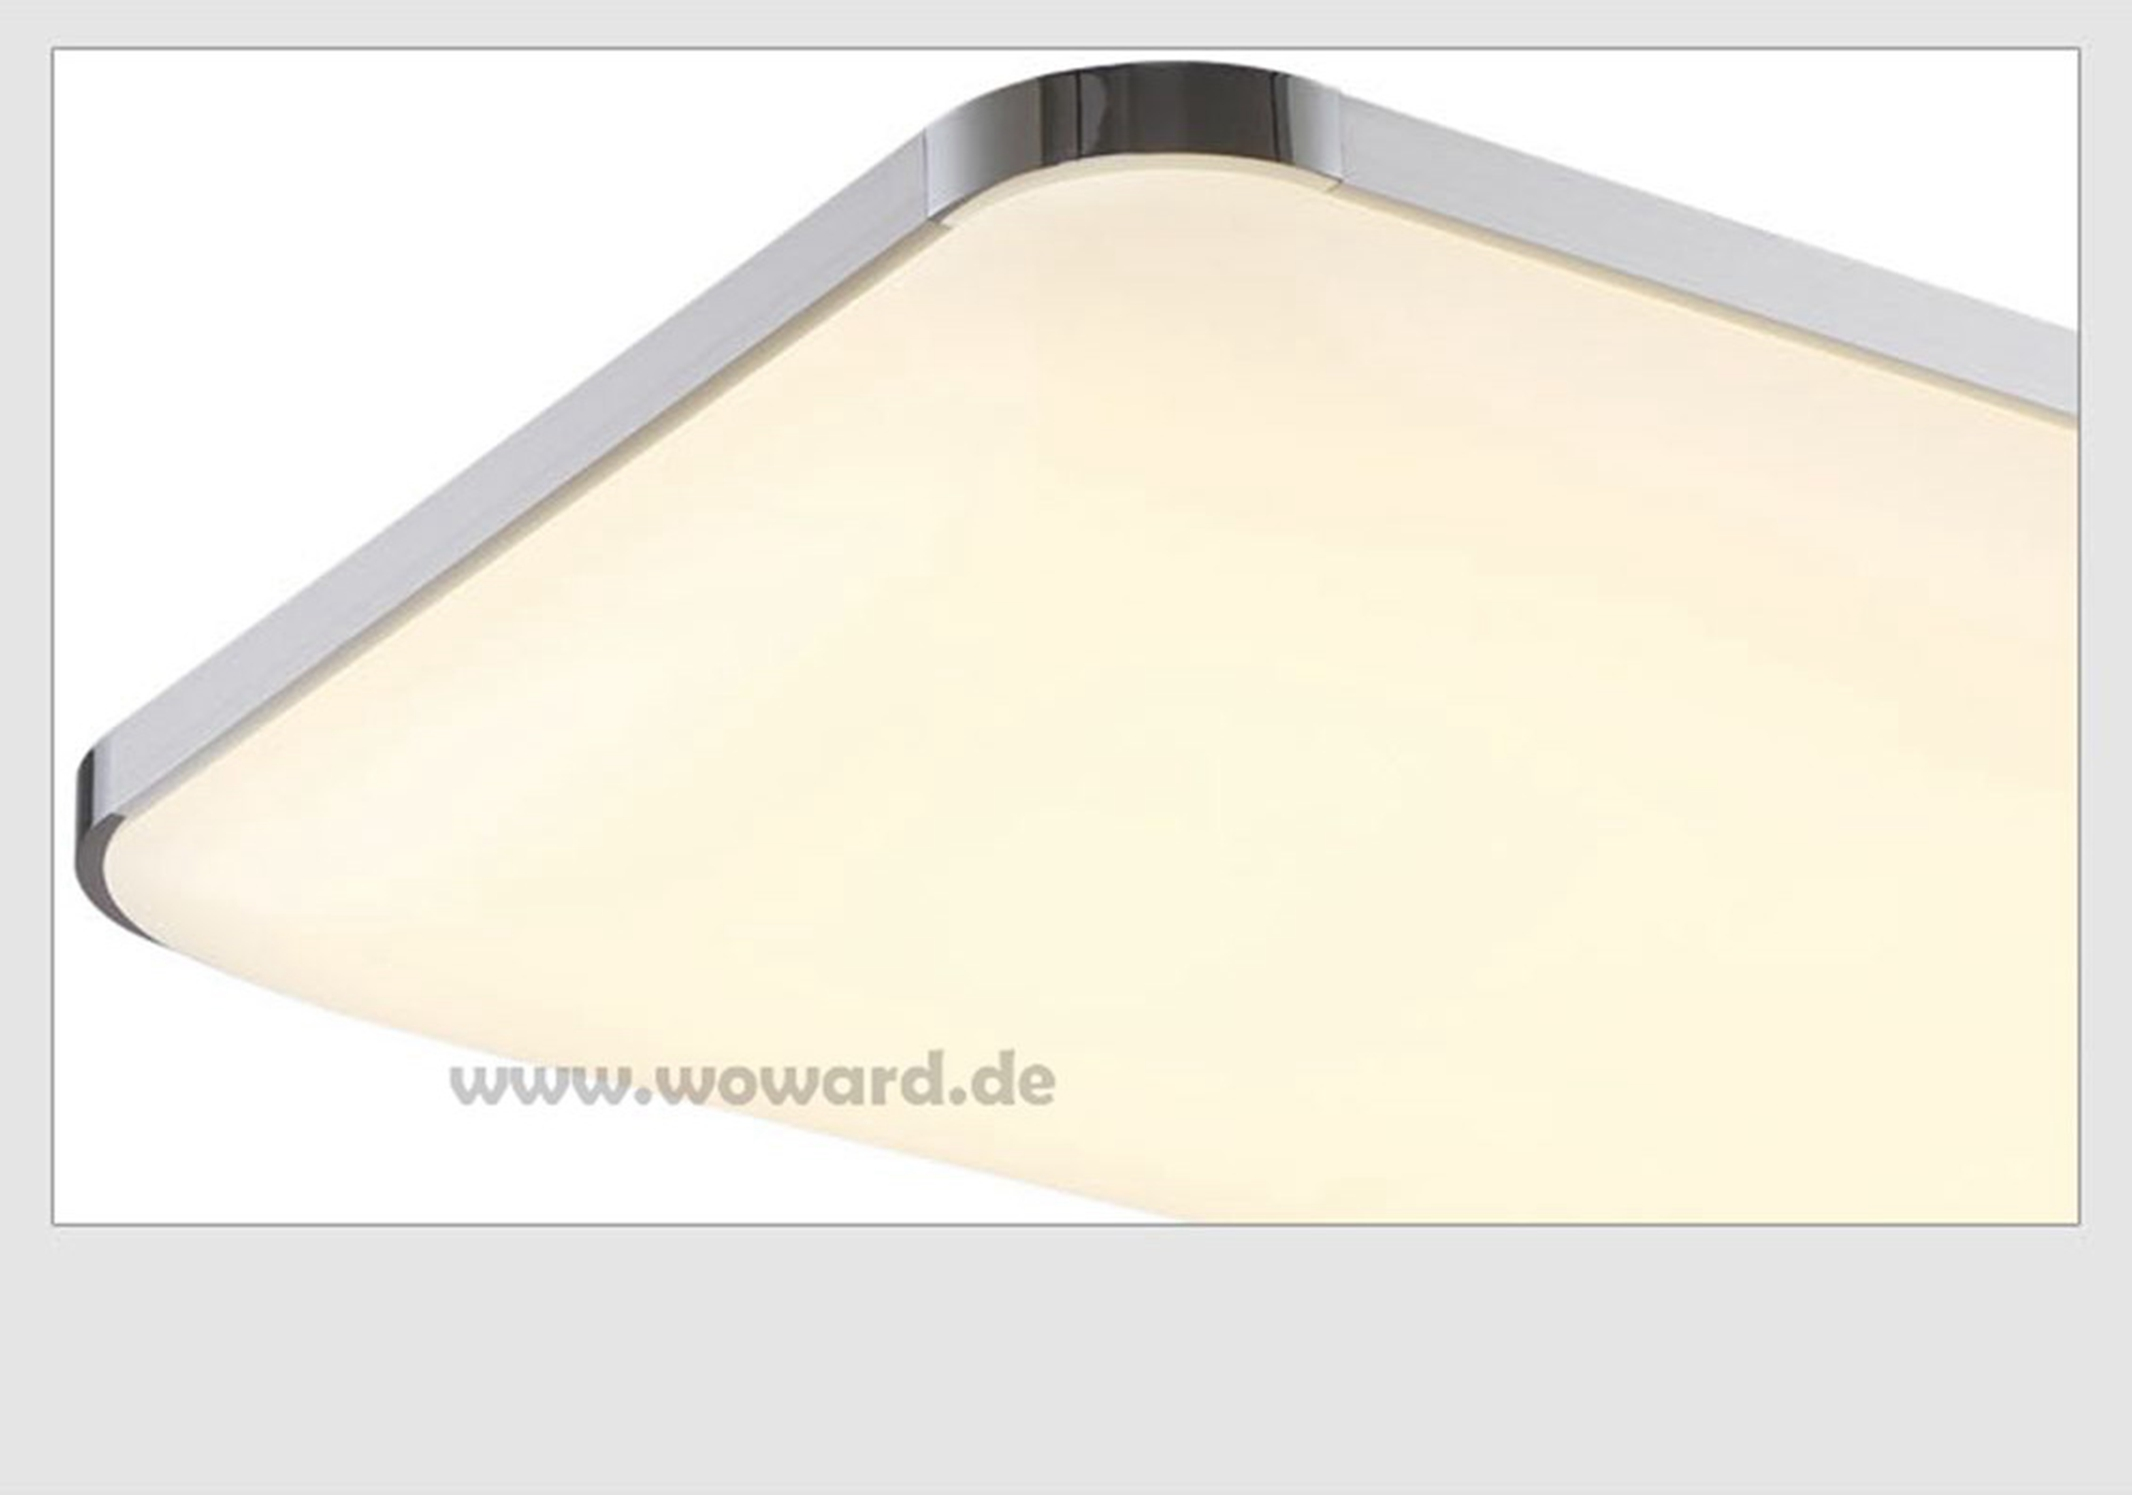 led deckenlampe deckenleuchten 12w 90w voll dimmbar wandlampe beleuchtung 500 ebay. Black Bedroom Furniture Sets. Home Design Ideas